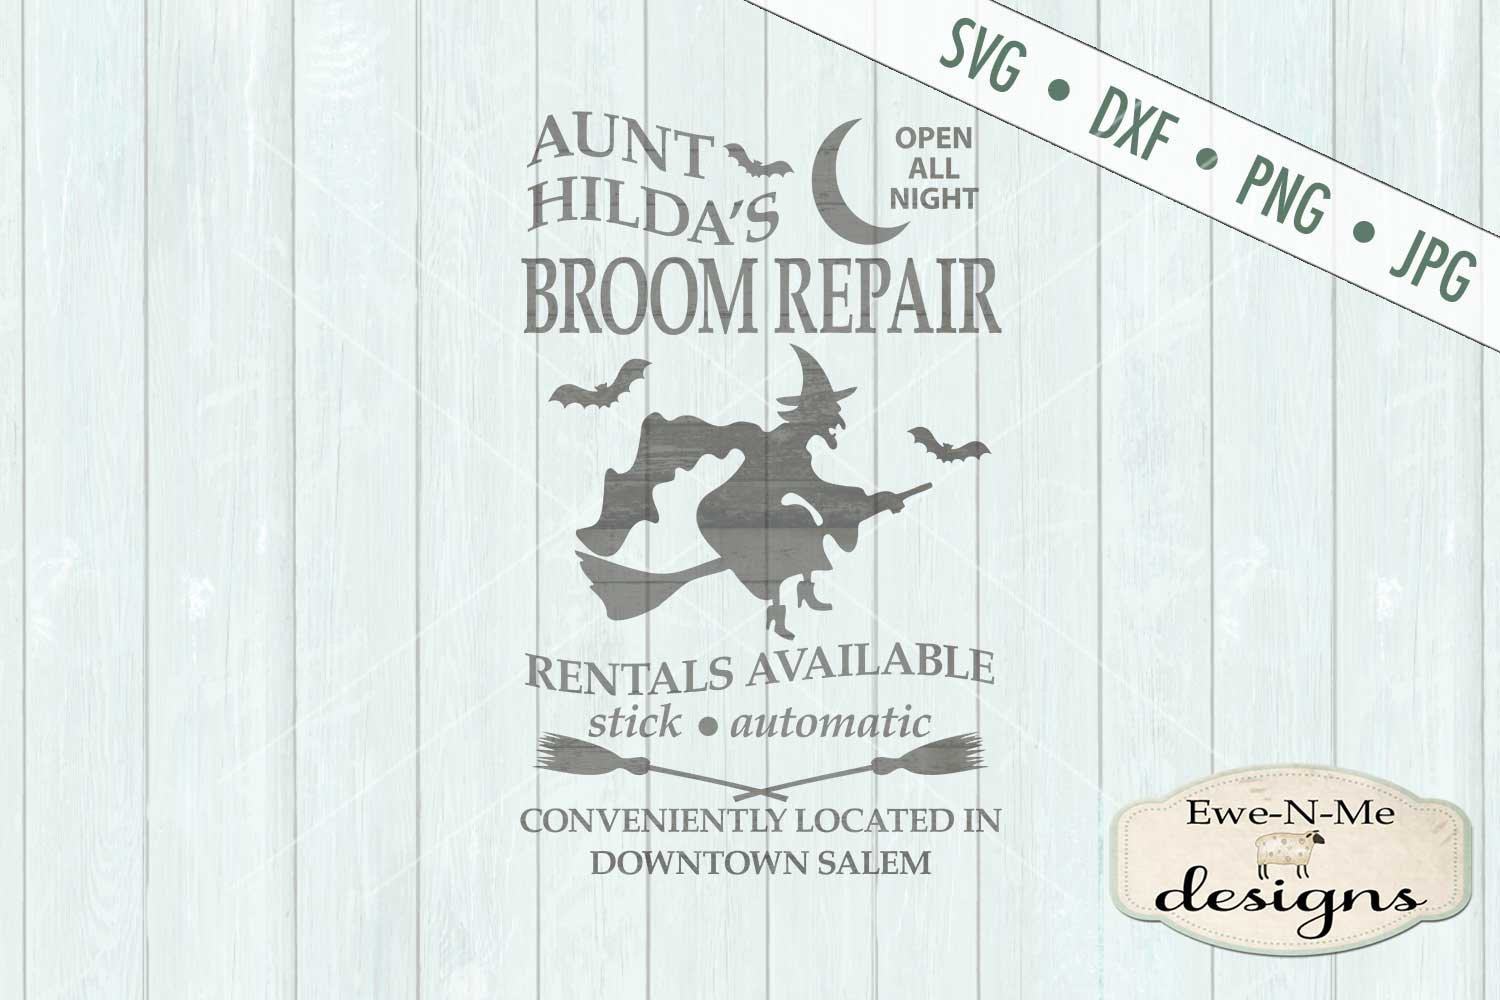 Hilda's Broom Repair Witch Halloween SVG DXF Files example image 2